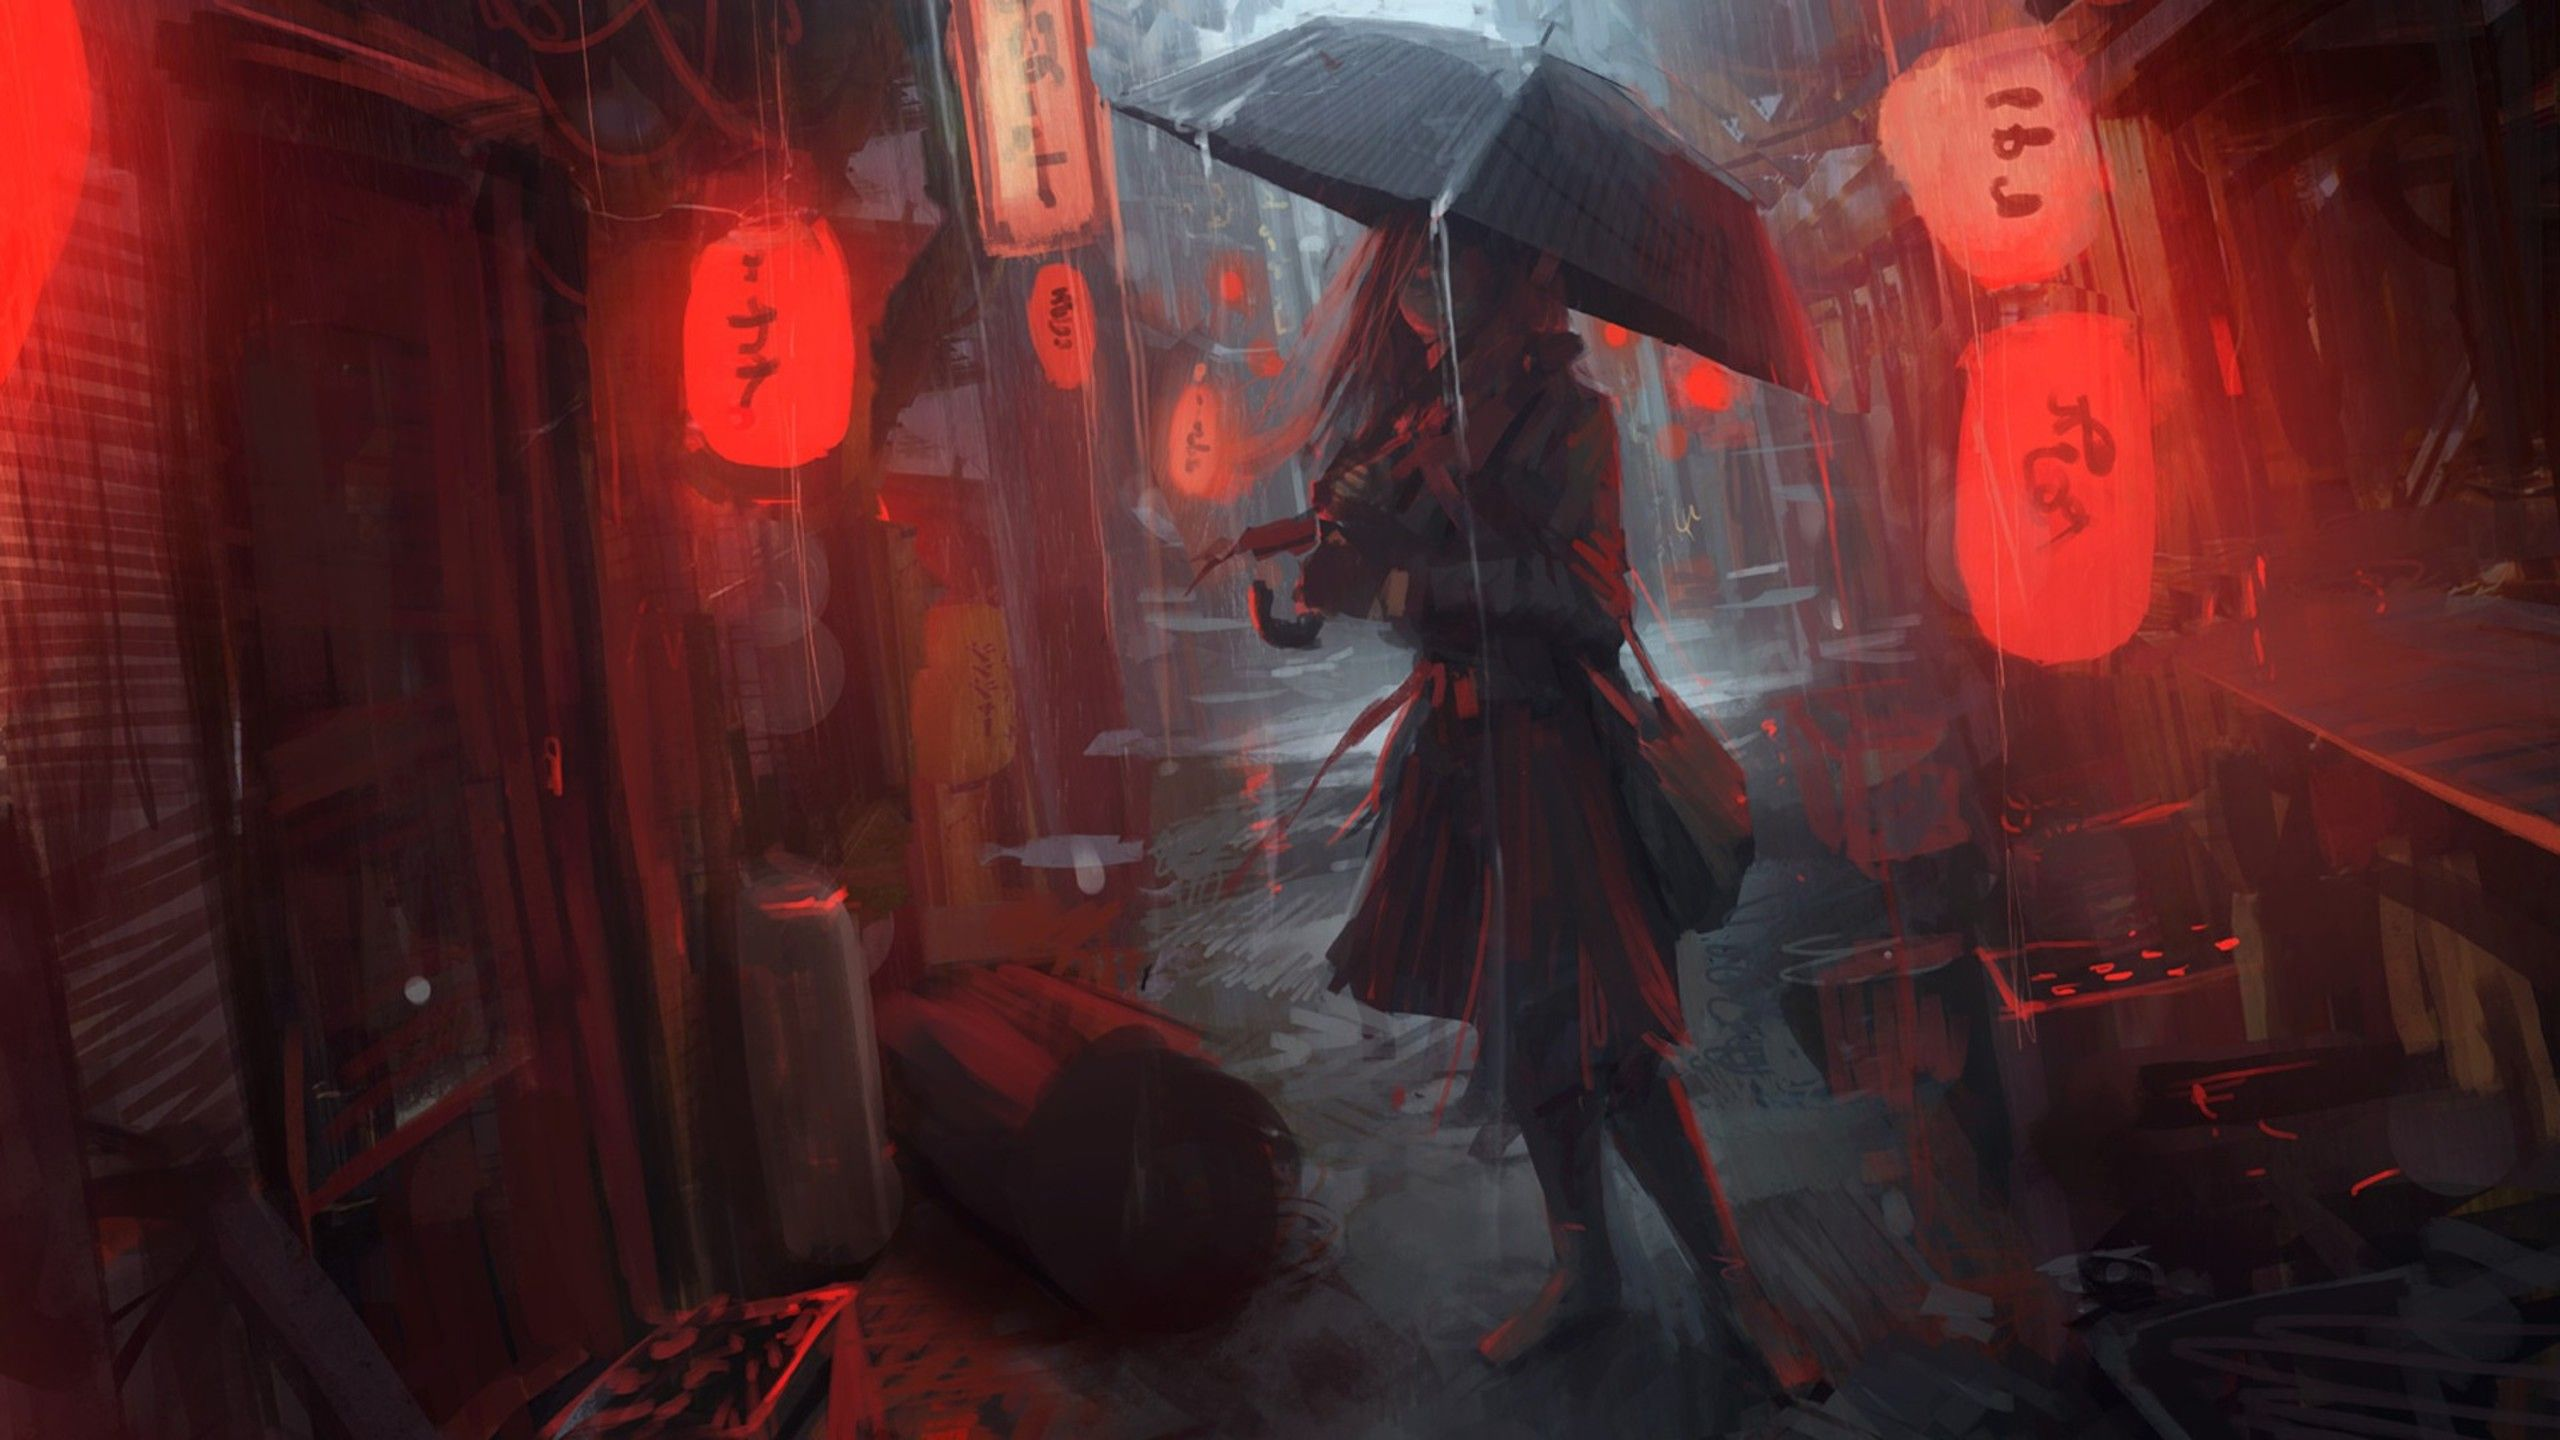 Anime Girl In Rain Hd Anime 4k Wallpapers Images Backgrounds